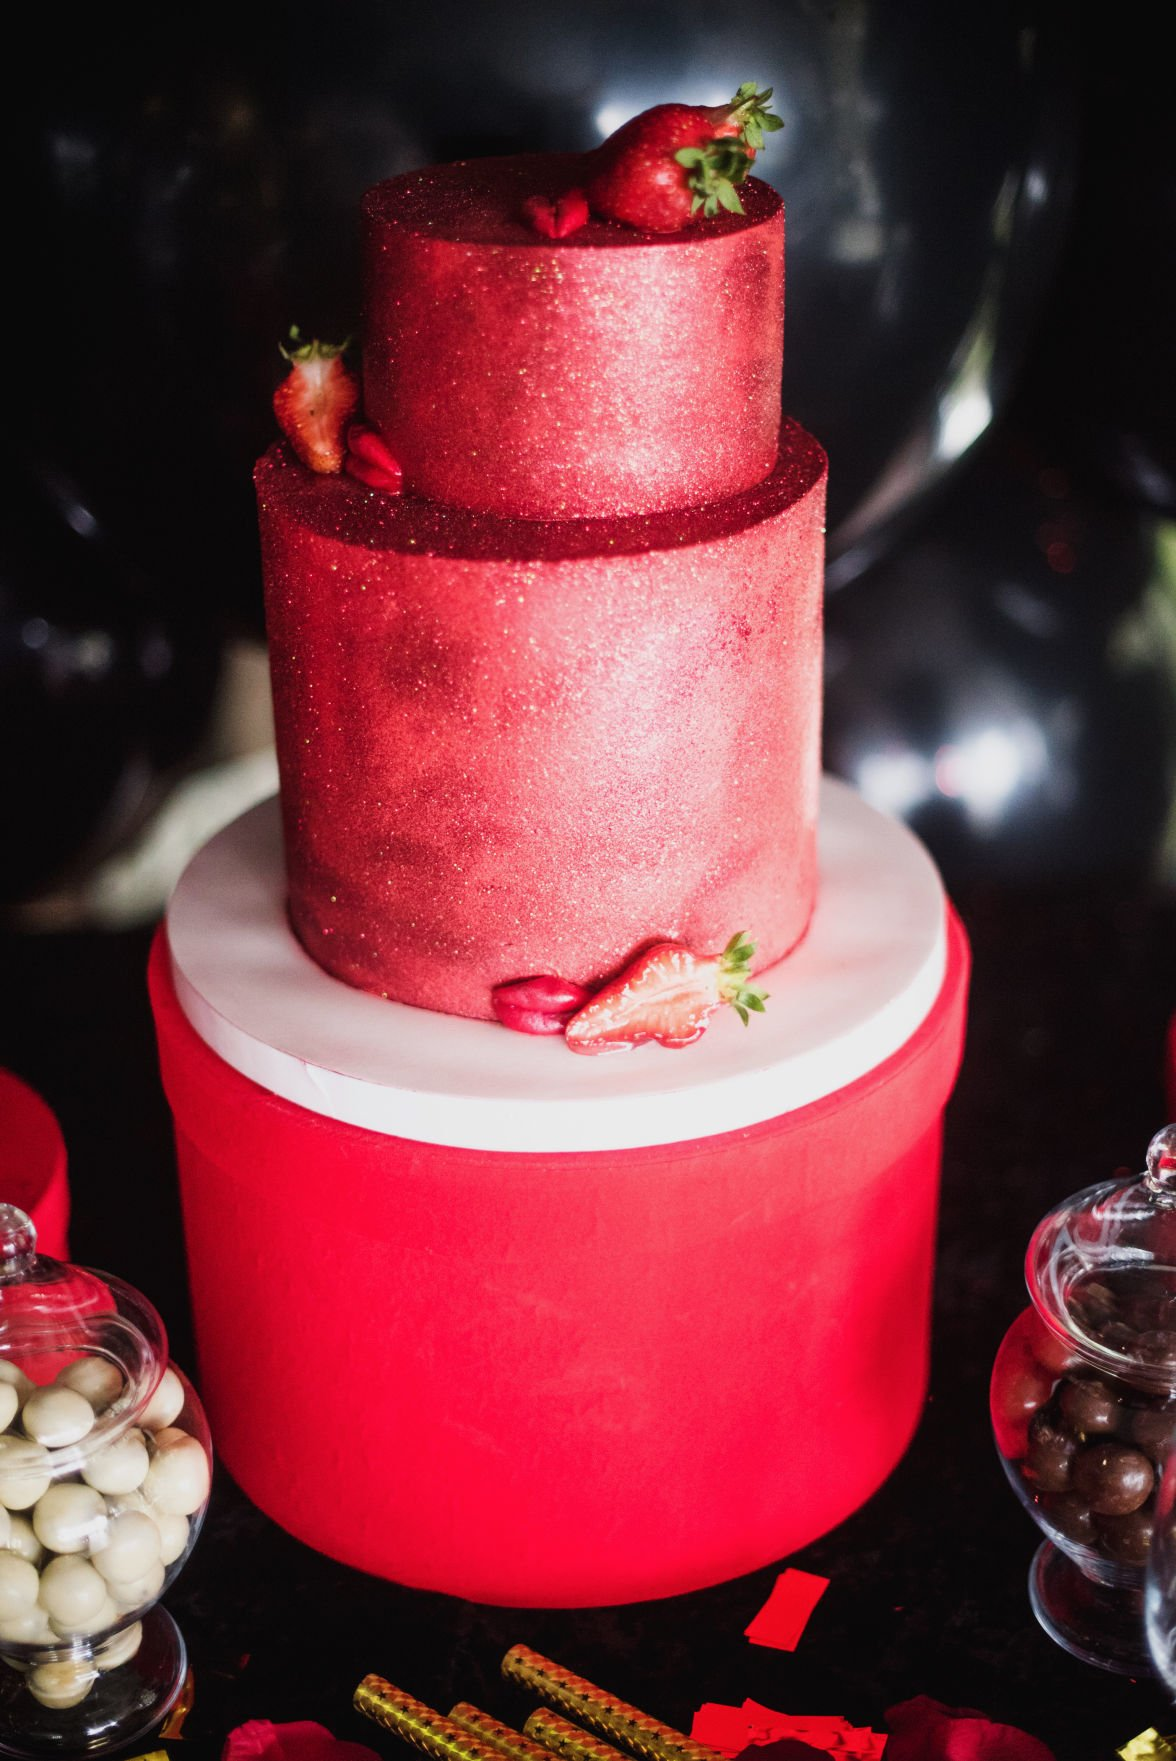 Wedding trends worth watching | Lifestyles | wcfcourier.com